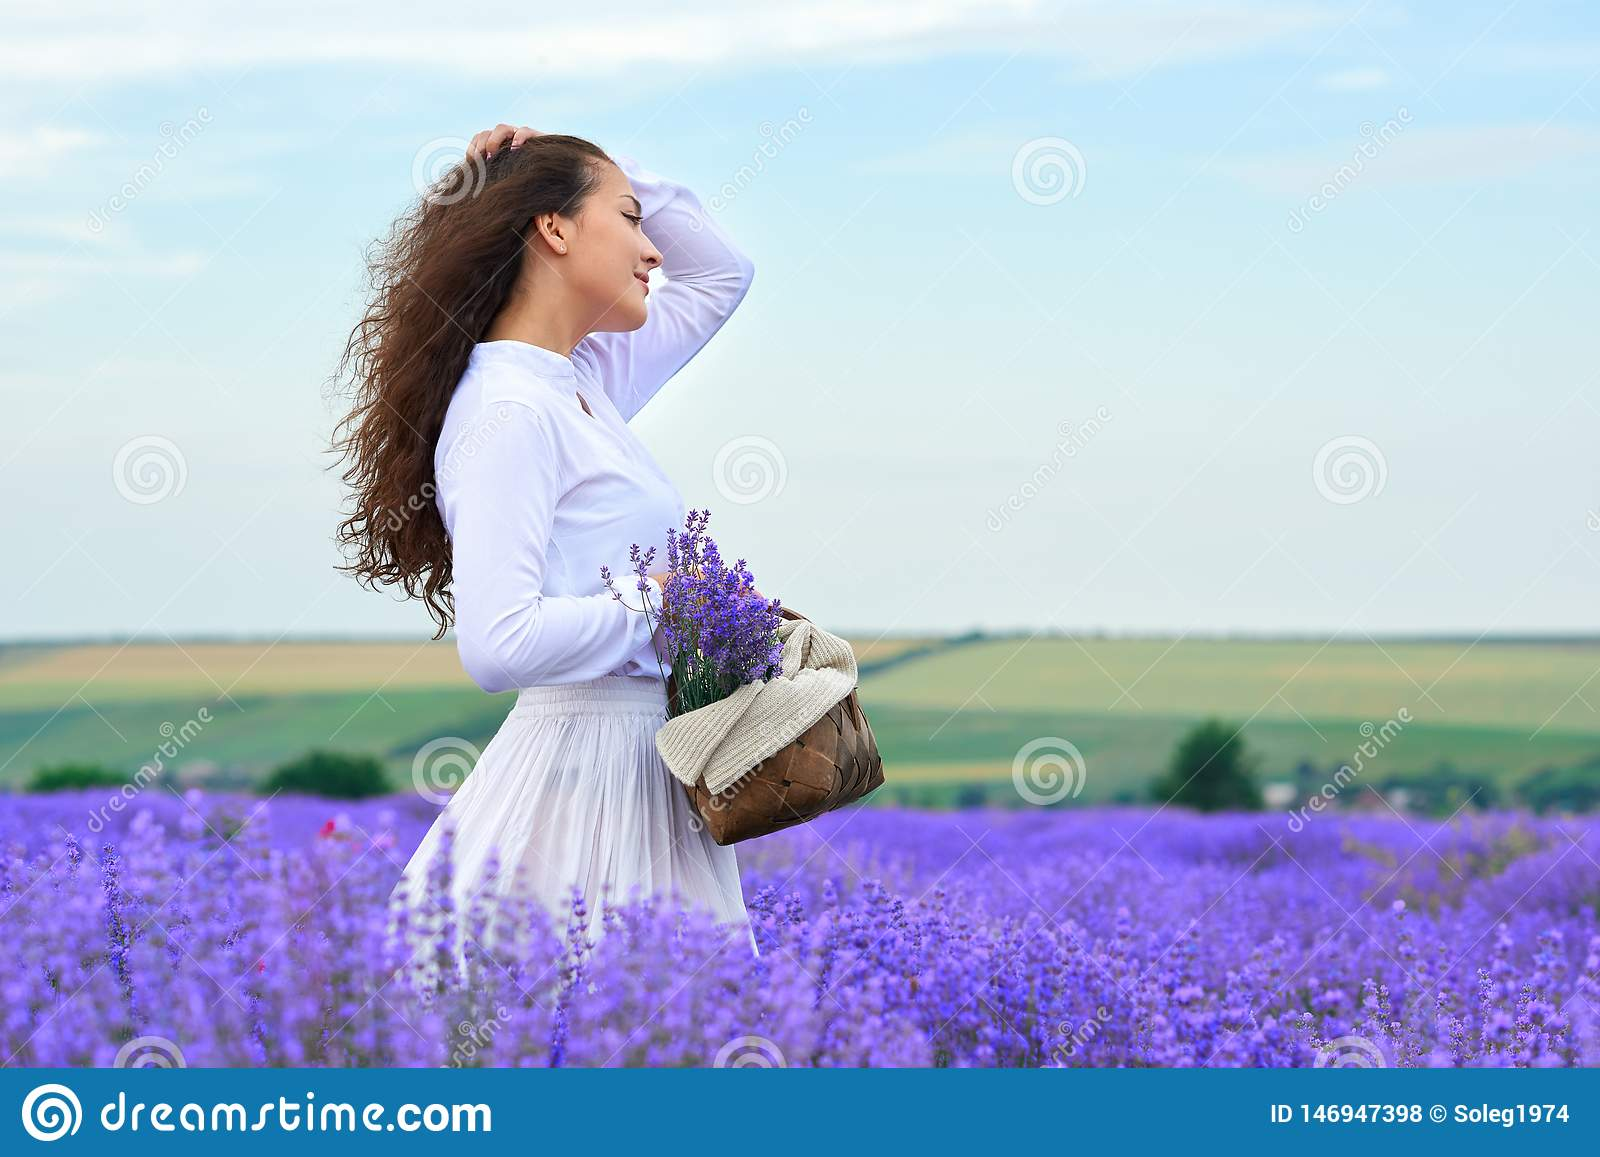 Young woman is in the lavender flower field, beautiful summer landscape